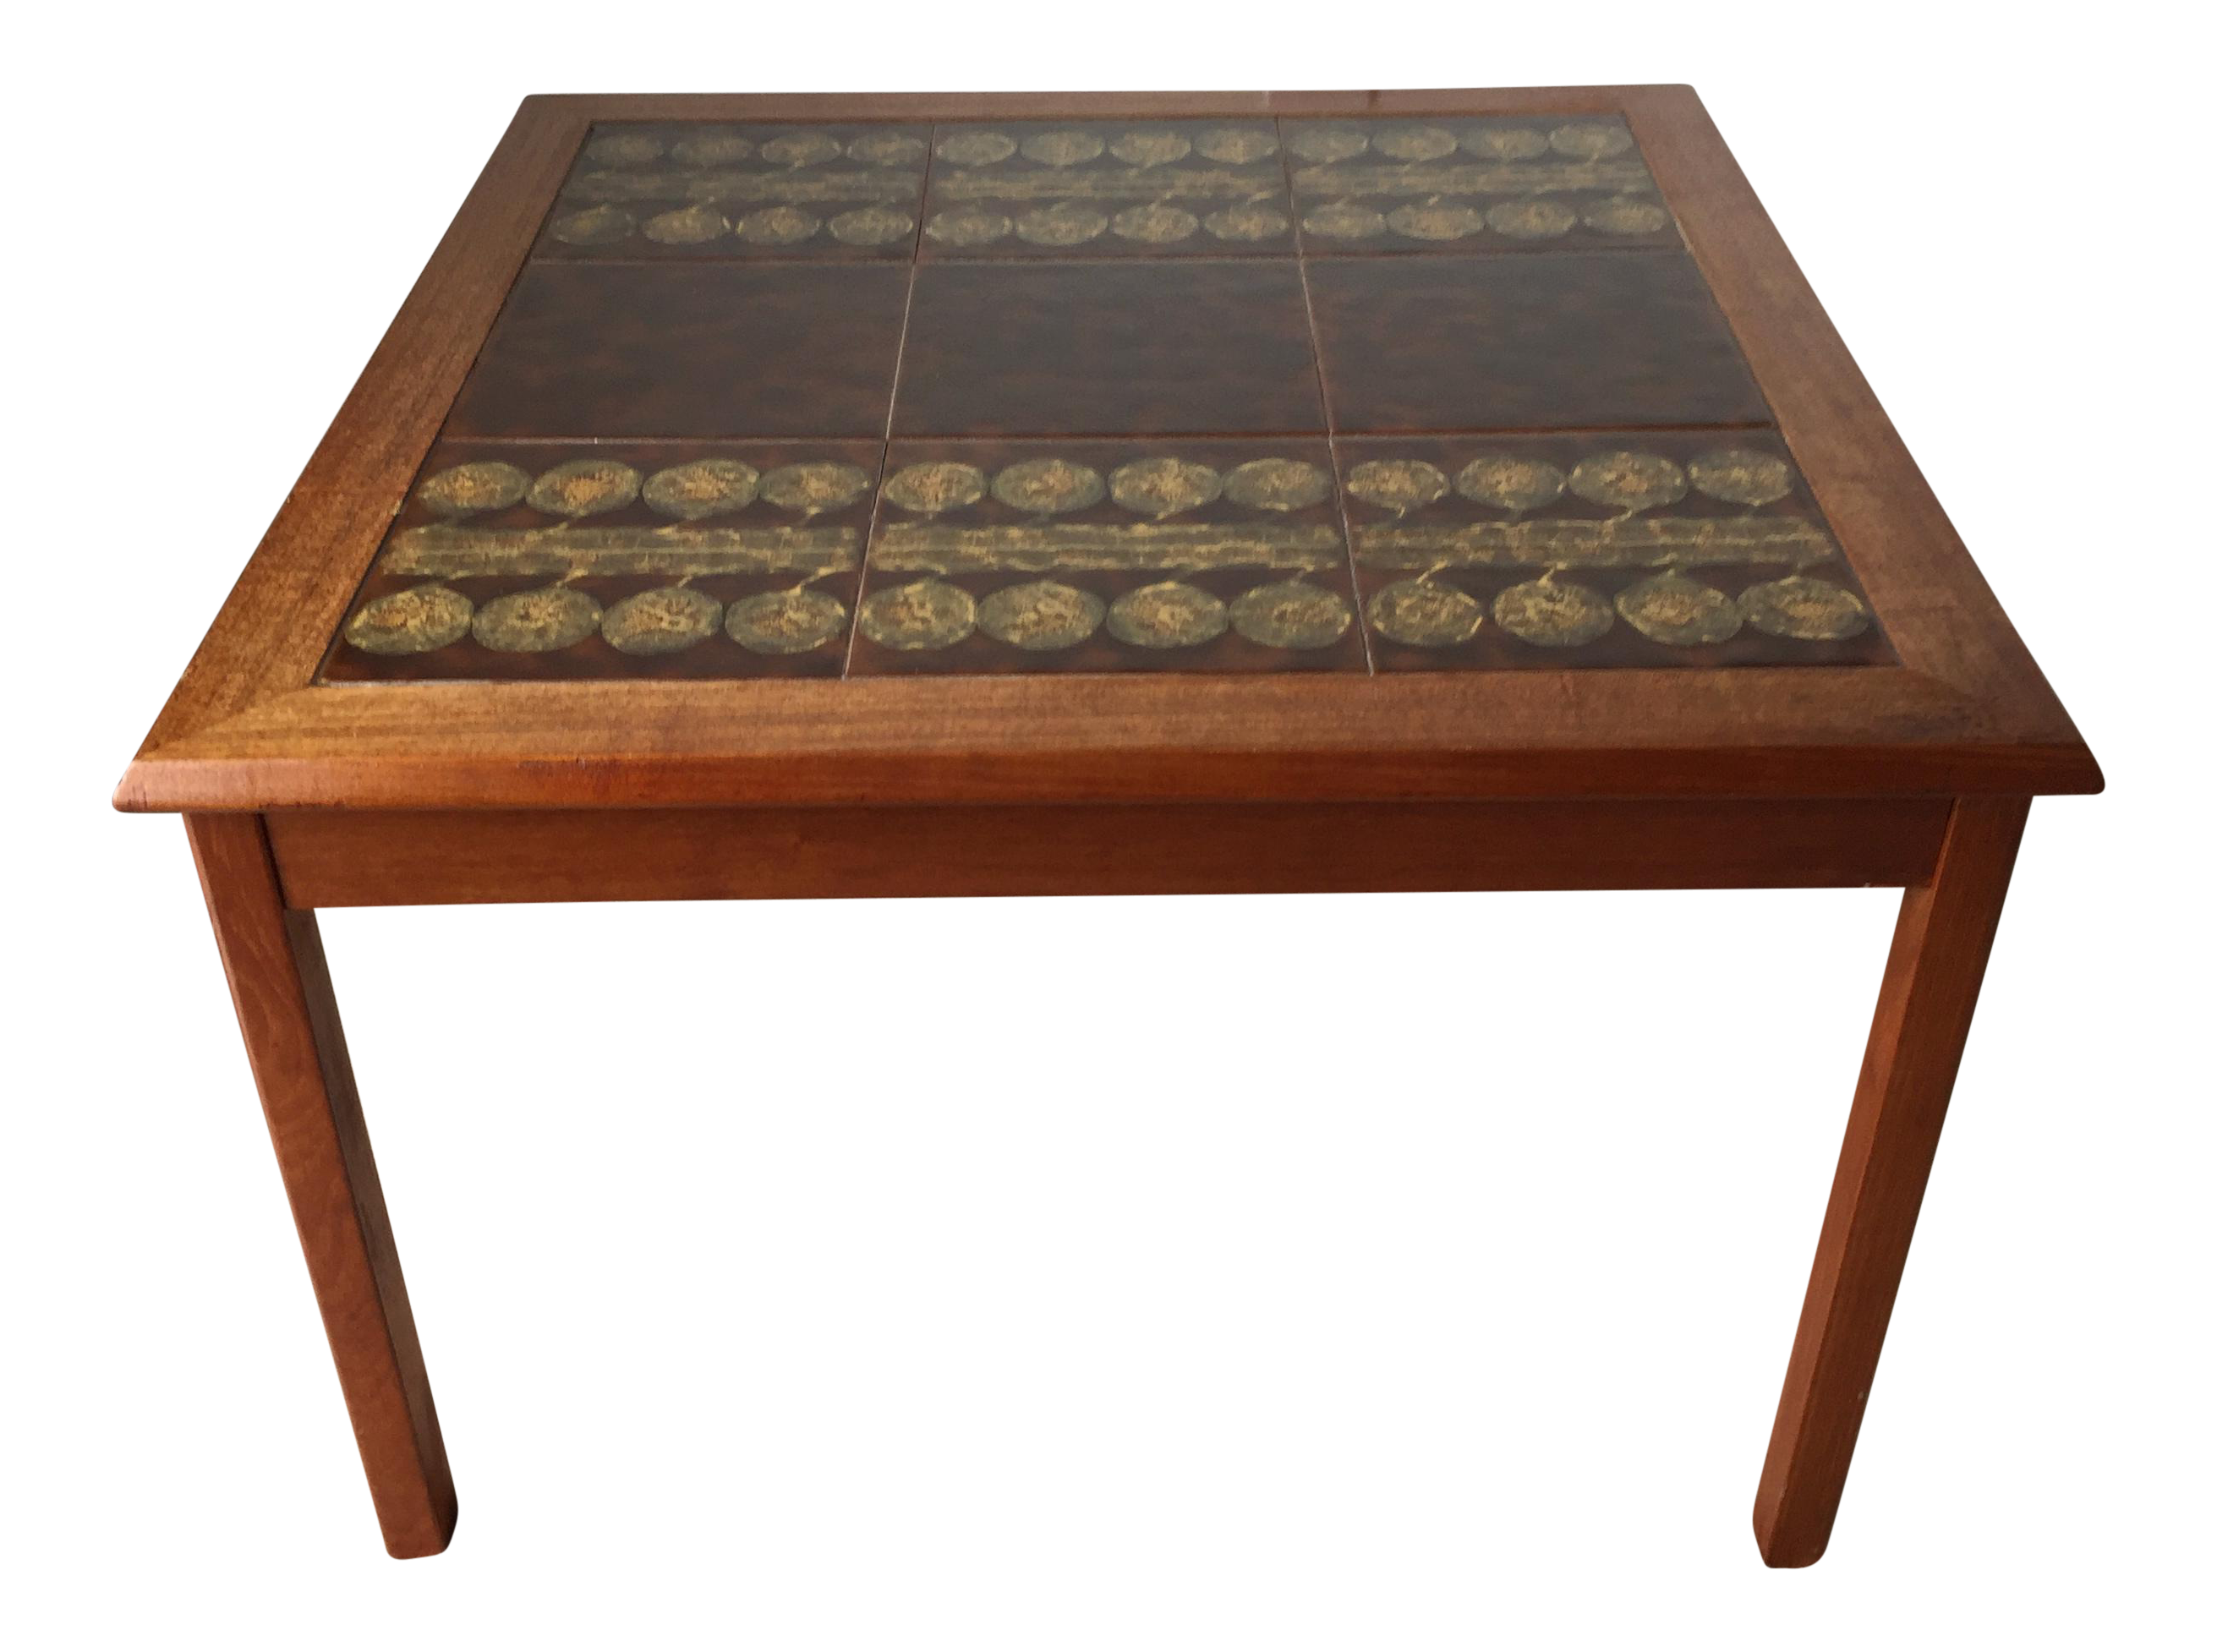 Outdoor Tile Table Top Danish Modern Tile Table Mobelfabrikken Toften Chairish